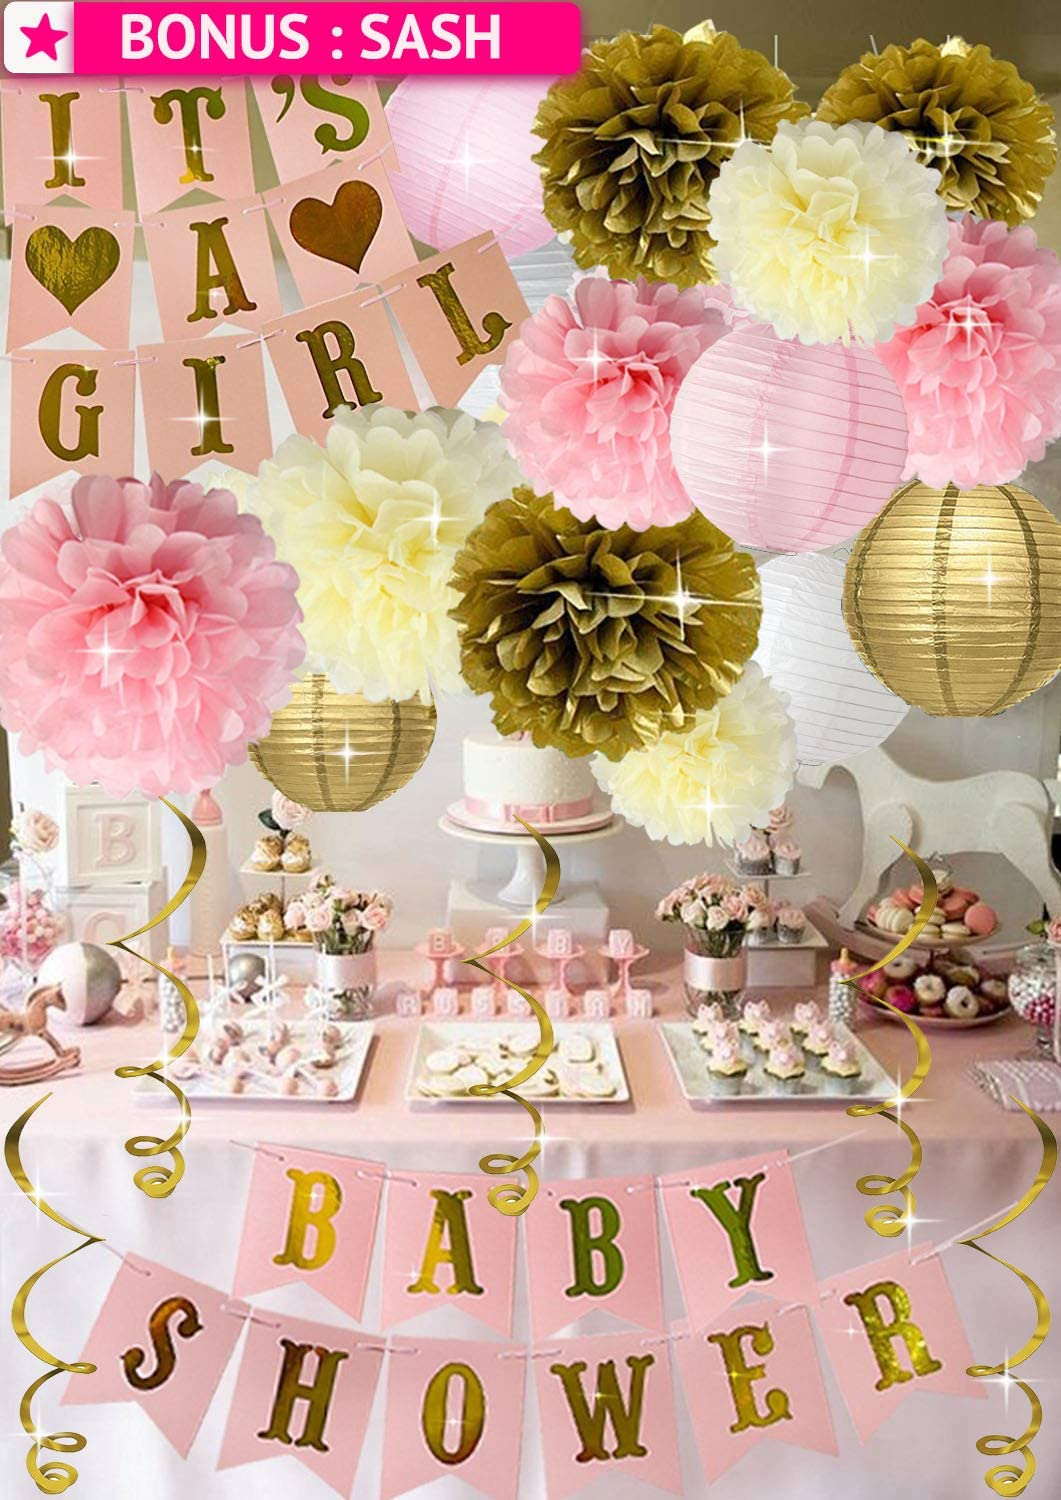 Baby Shower Decorations for Girl Pink Gold Princess It's A Girl Banner Poms Lanterns Mom To Be Sash